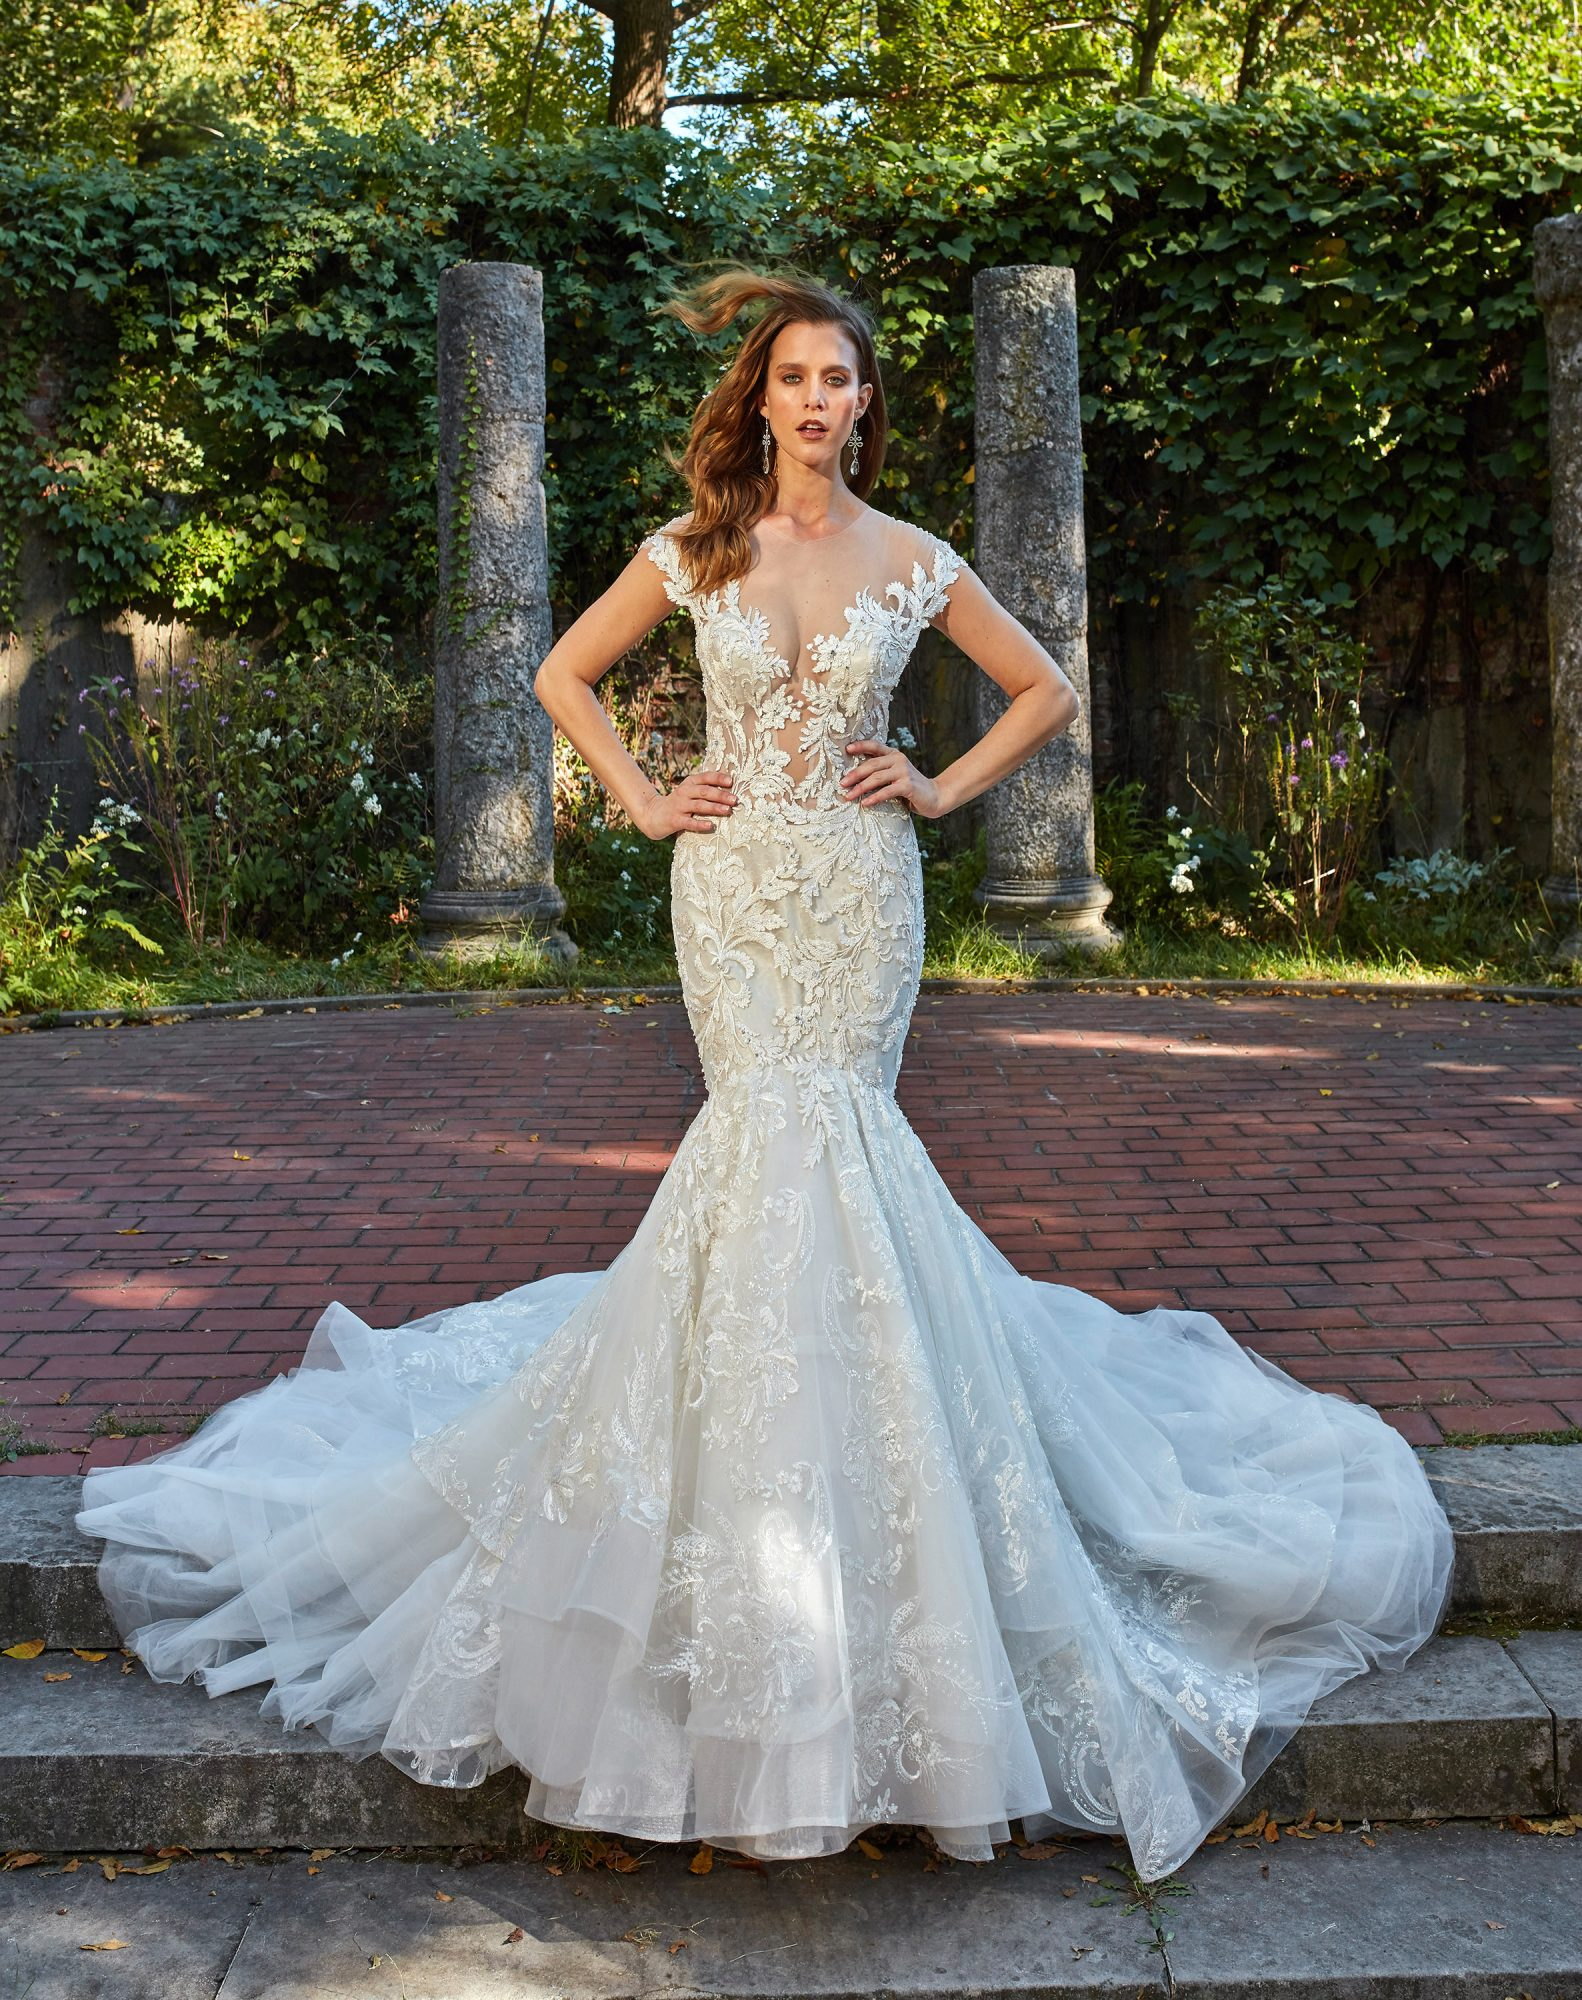 Off-the-shoulder mermaid wedding dress with embroidered lace and illusion bodice